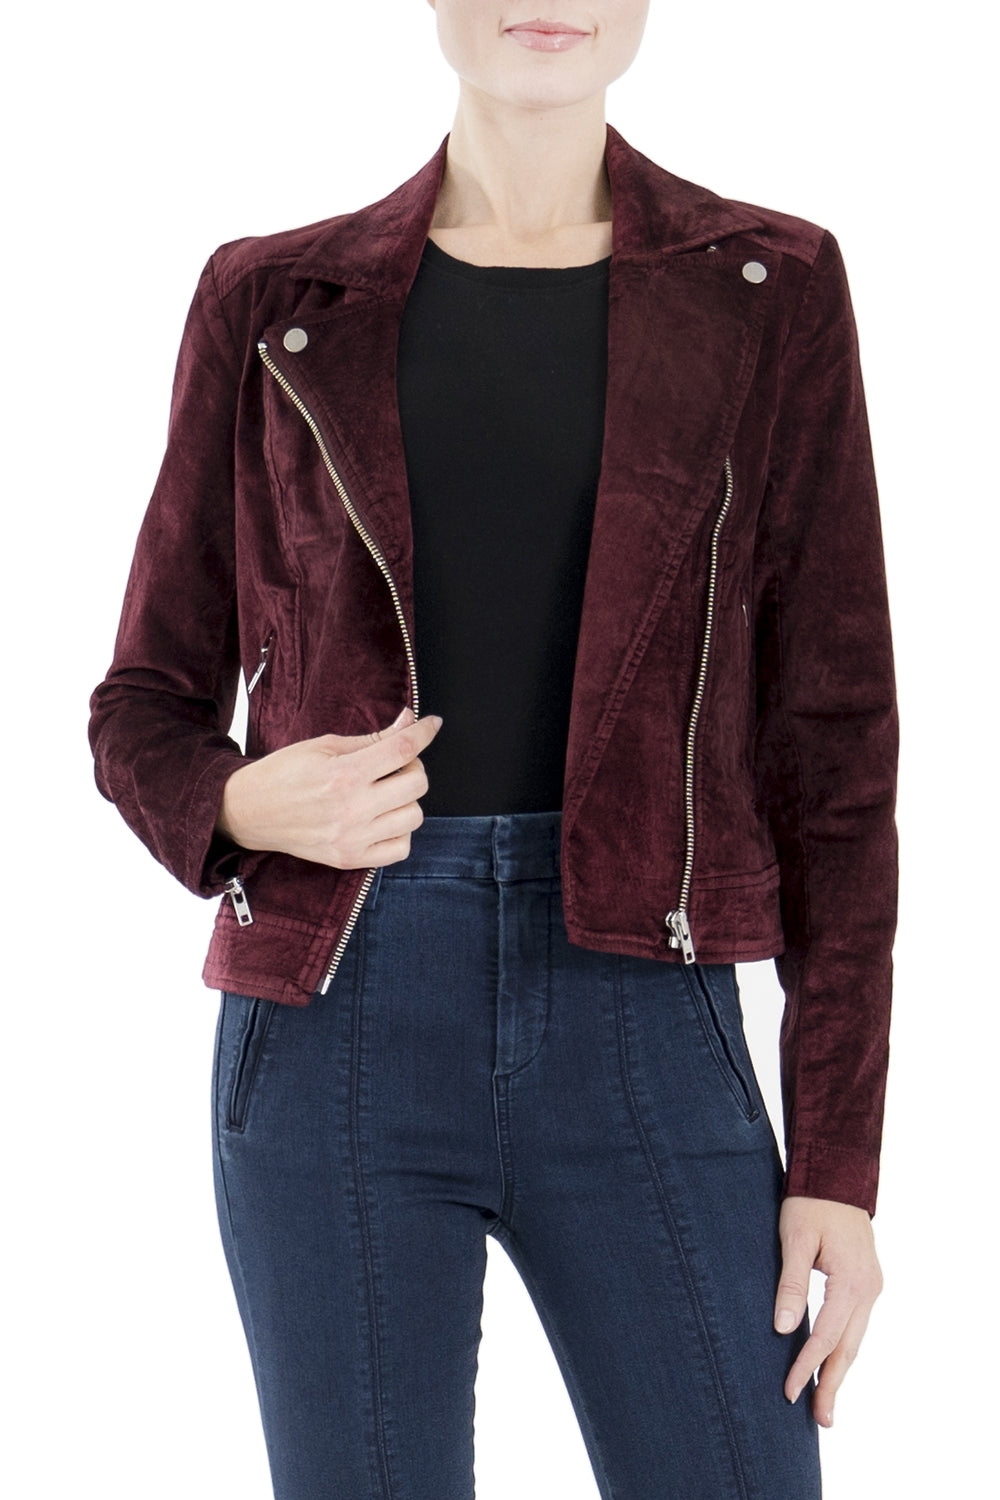 Cranberry Suede Jacket